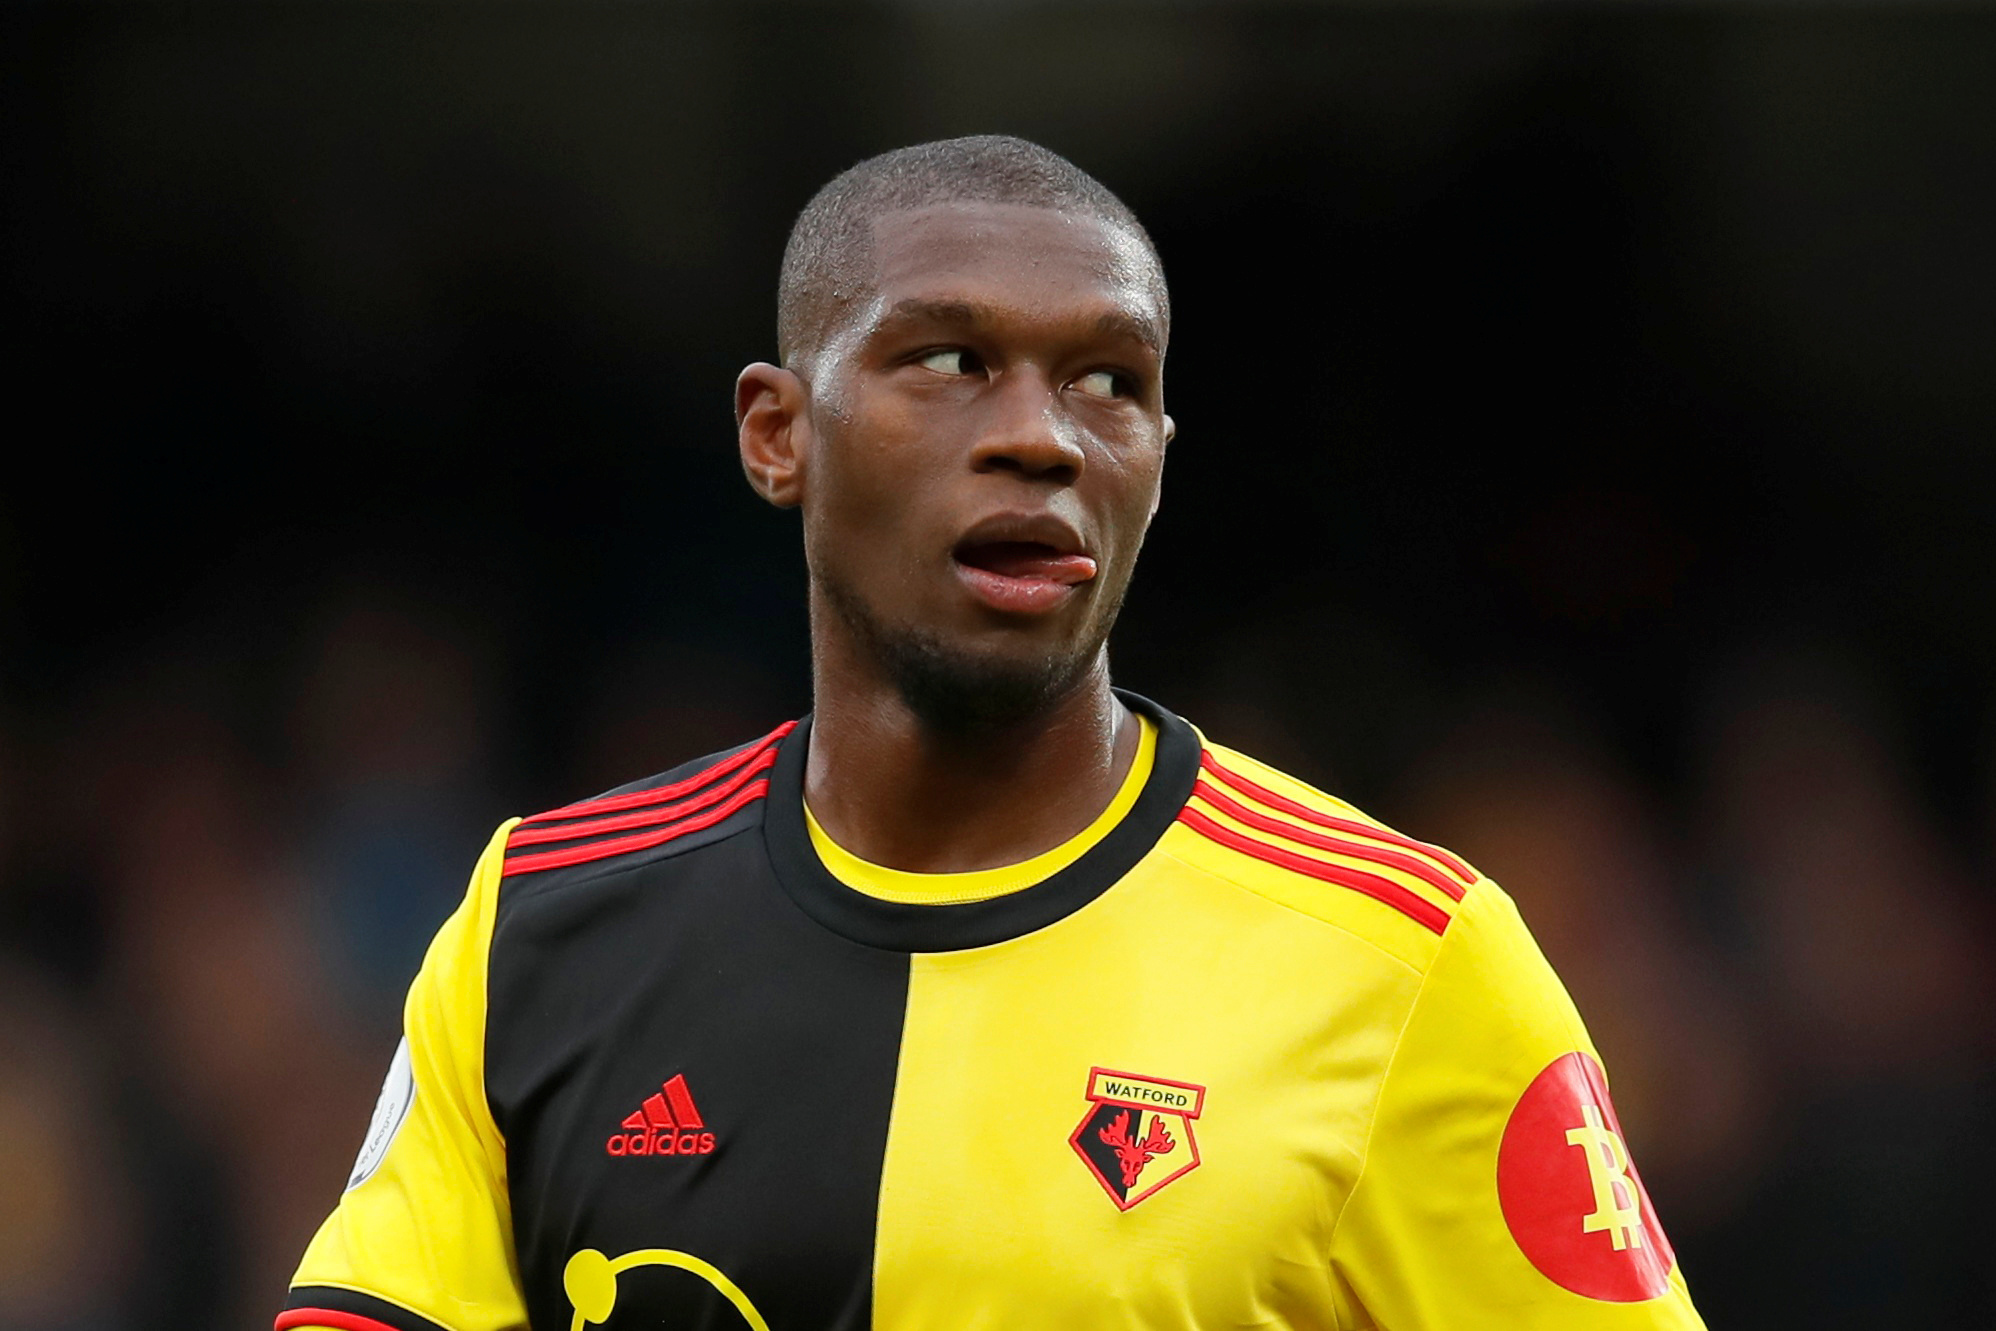 Watford report racist abuse sent to Christian Kabasele to Hertfordshire Police